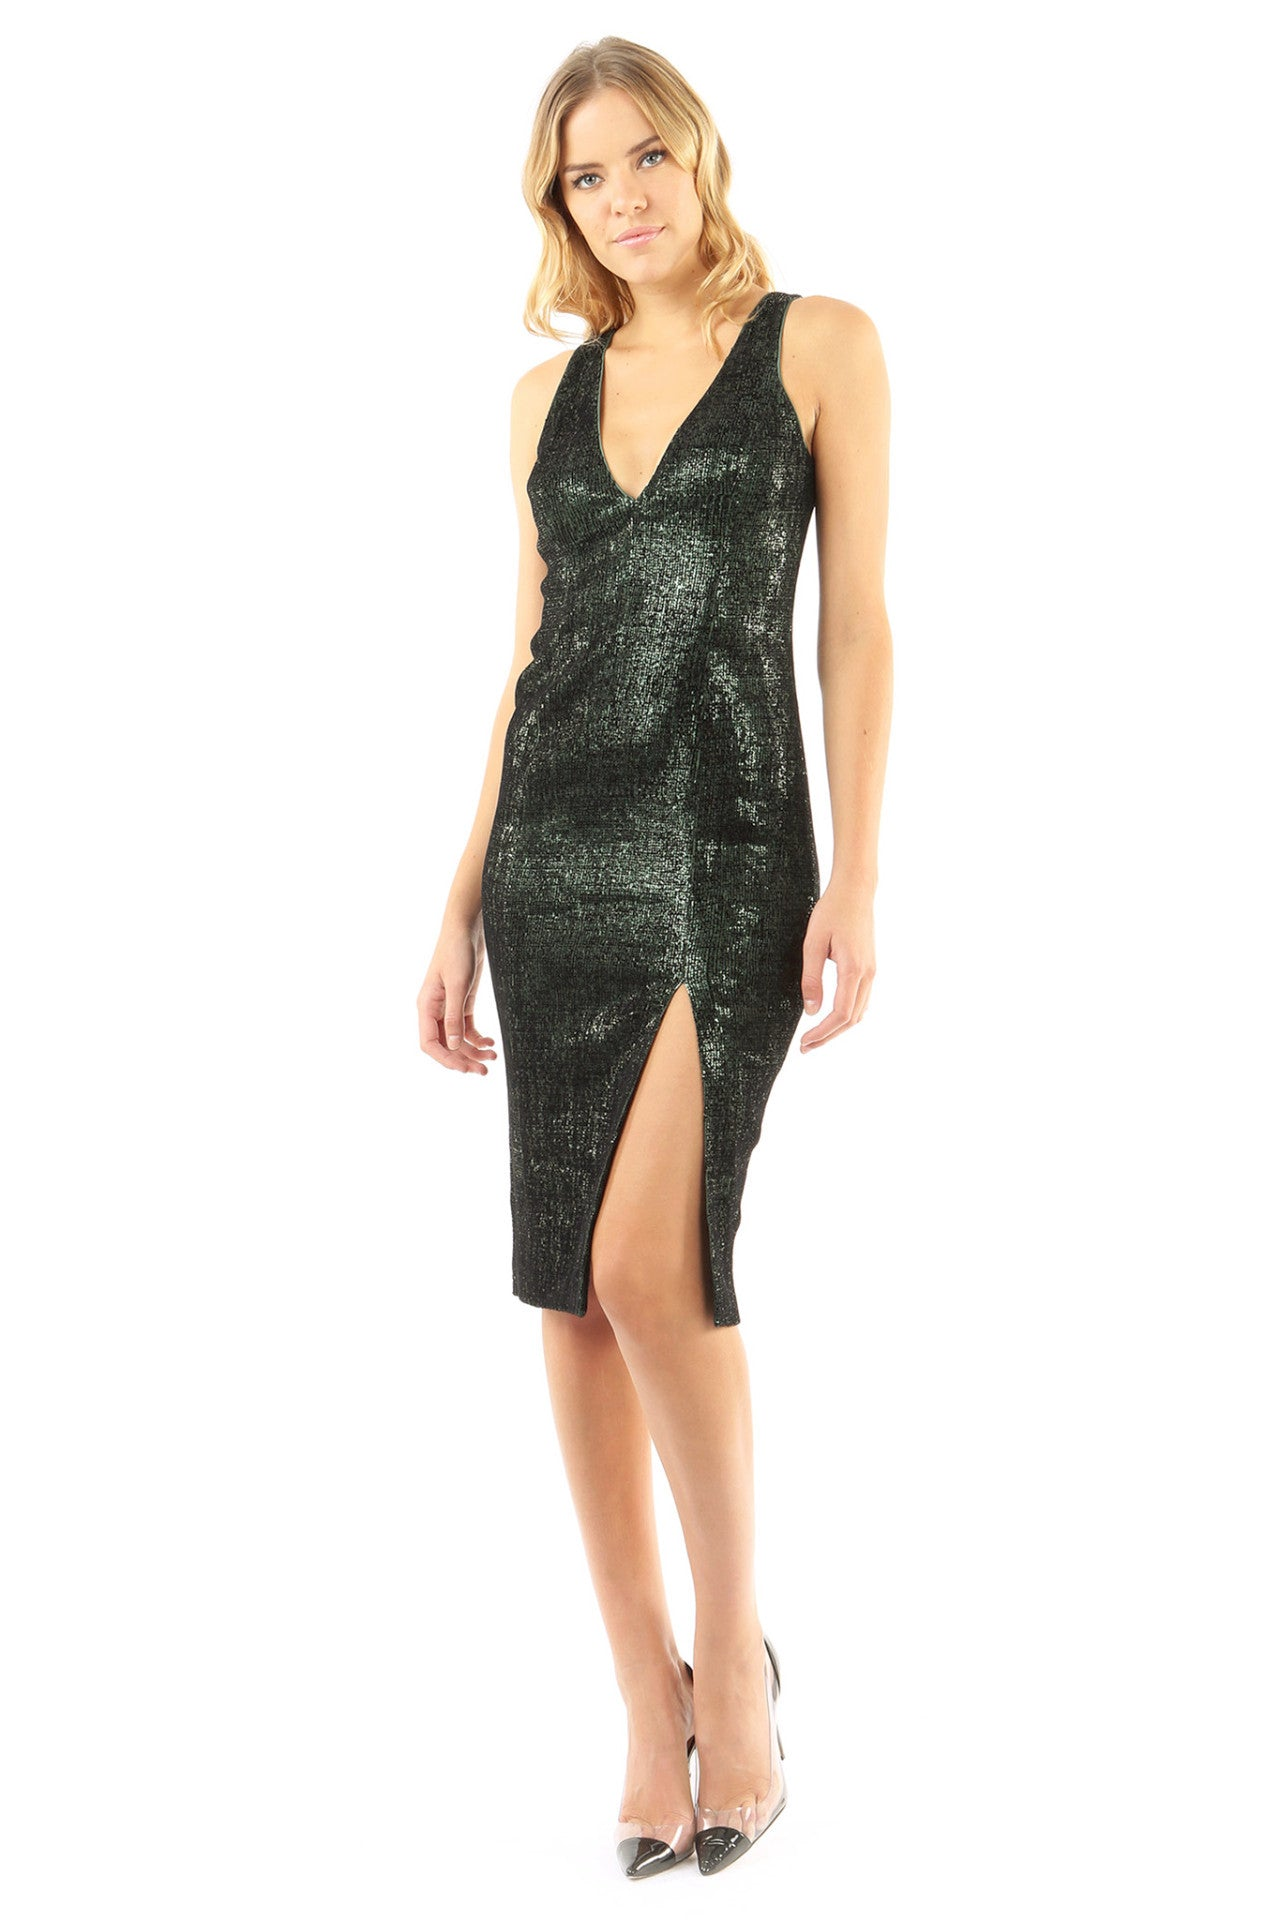 Jay Godfrey Black Sequin Deep-V Dress - Front View